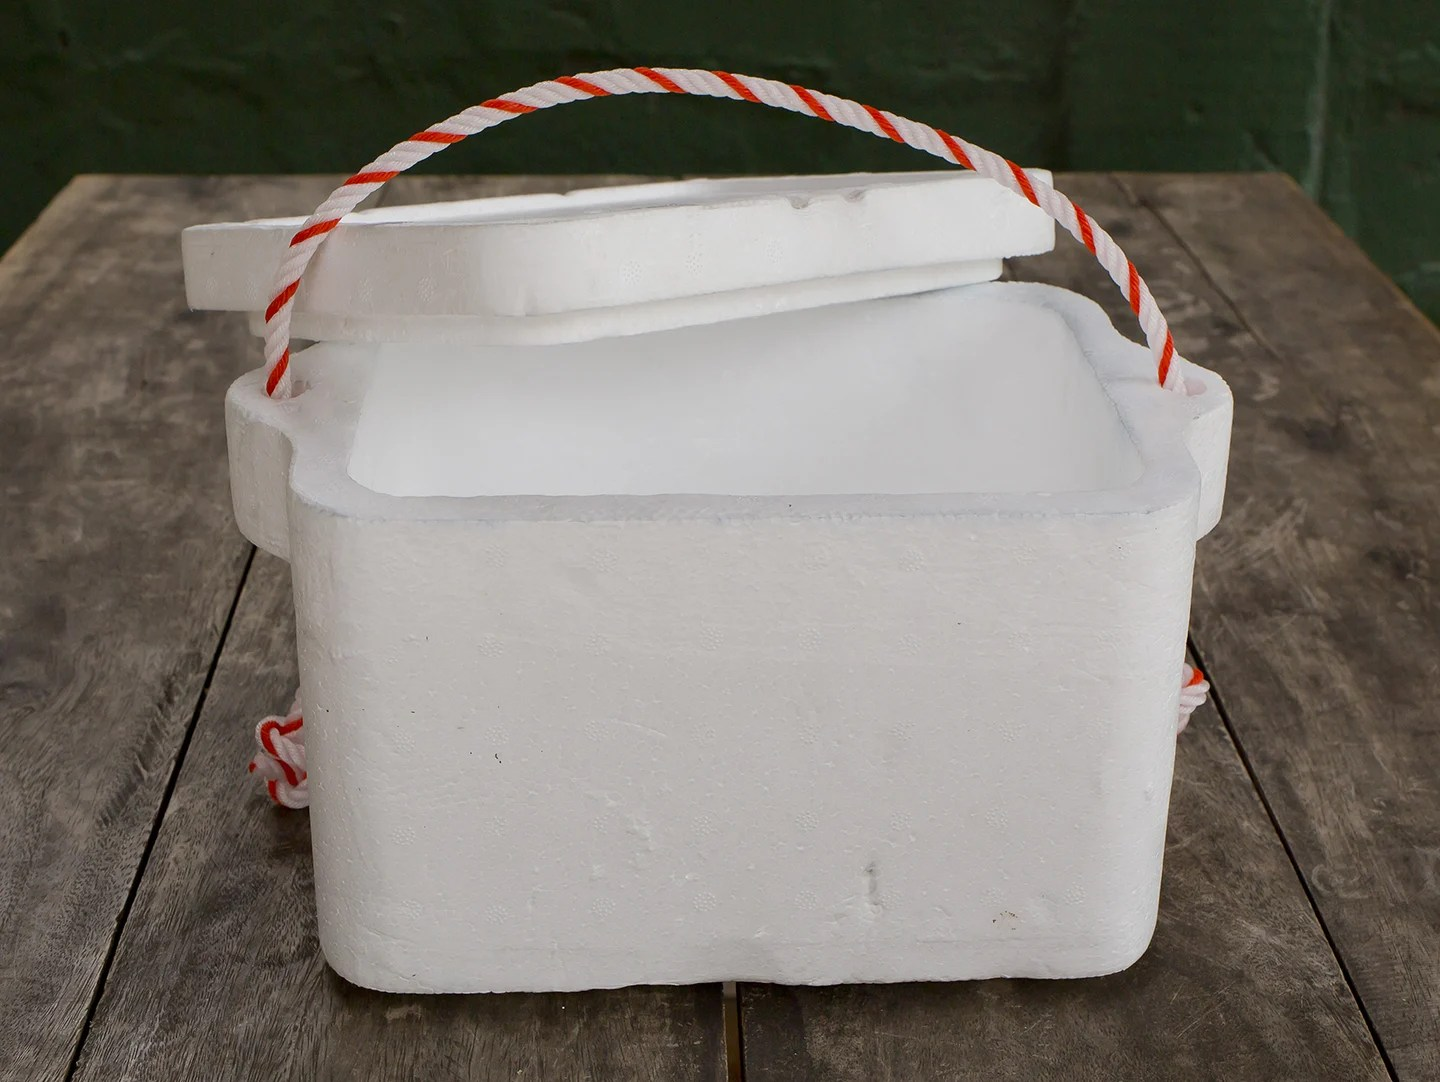 A styrofoam box with a red and white handle on a wooden table